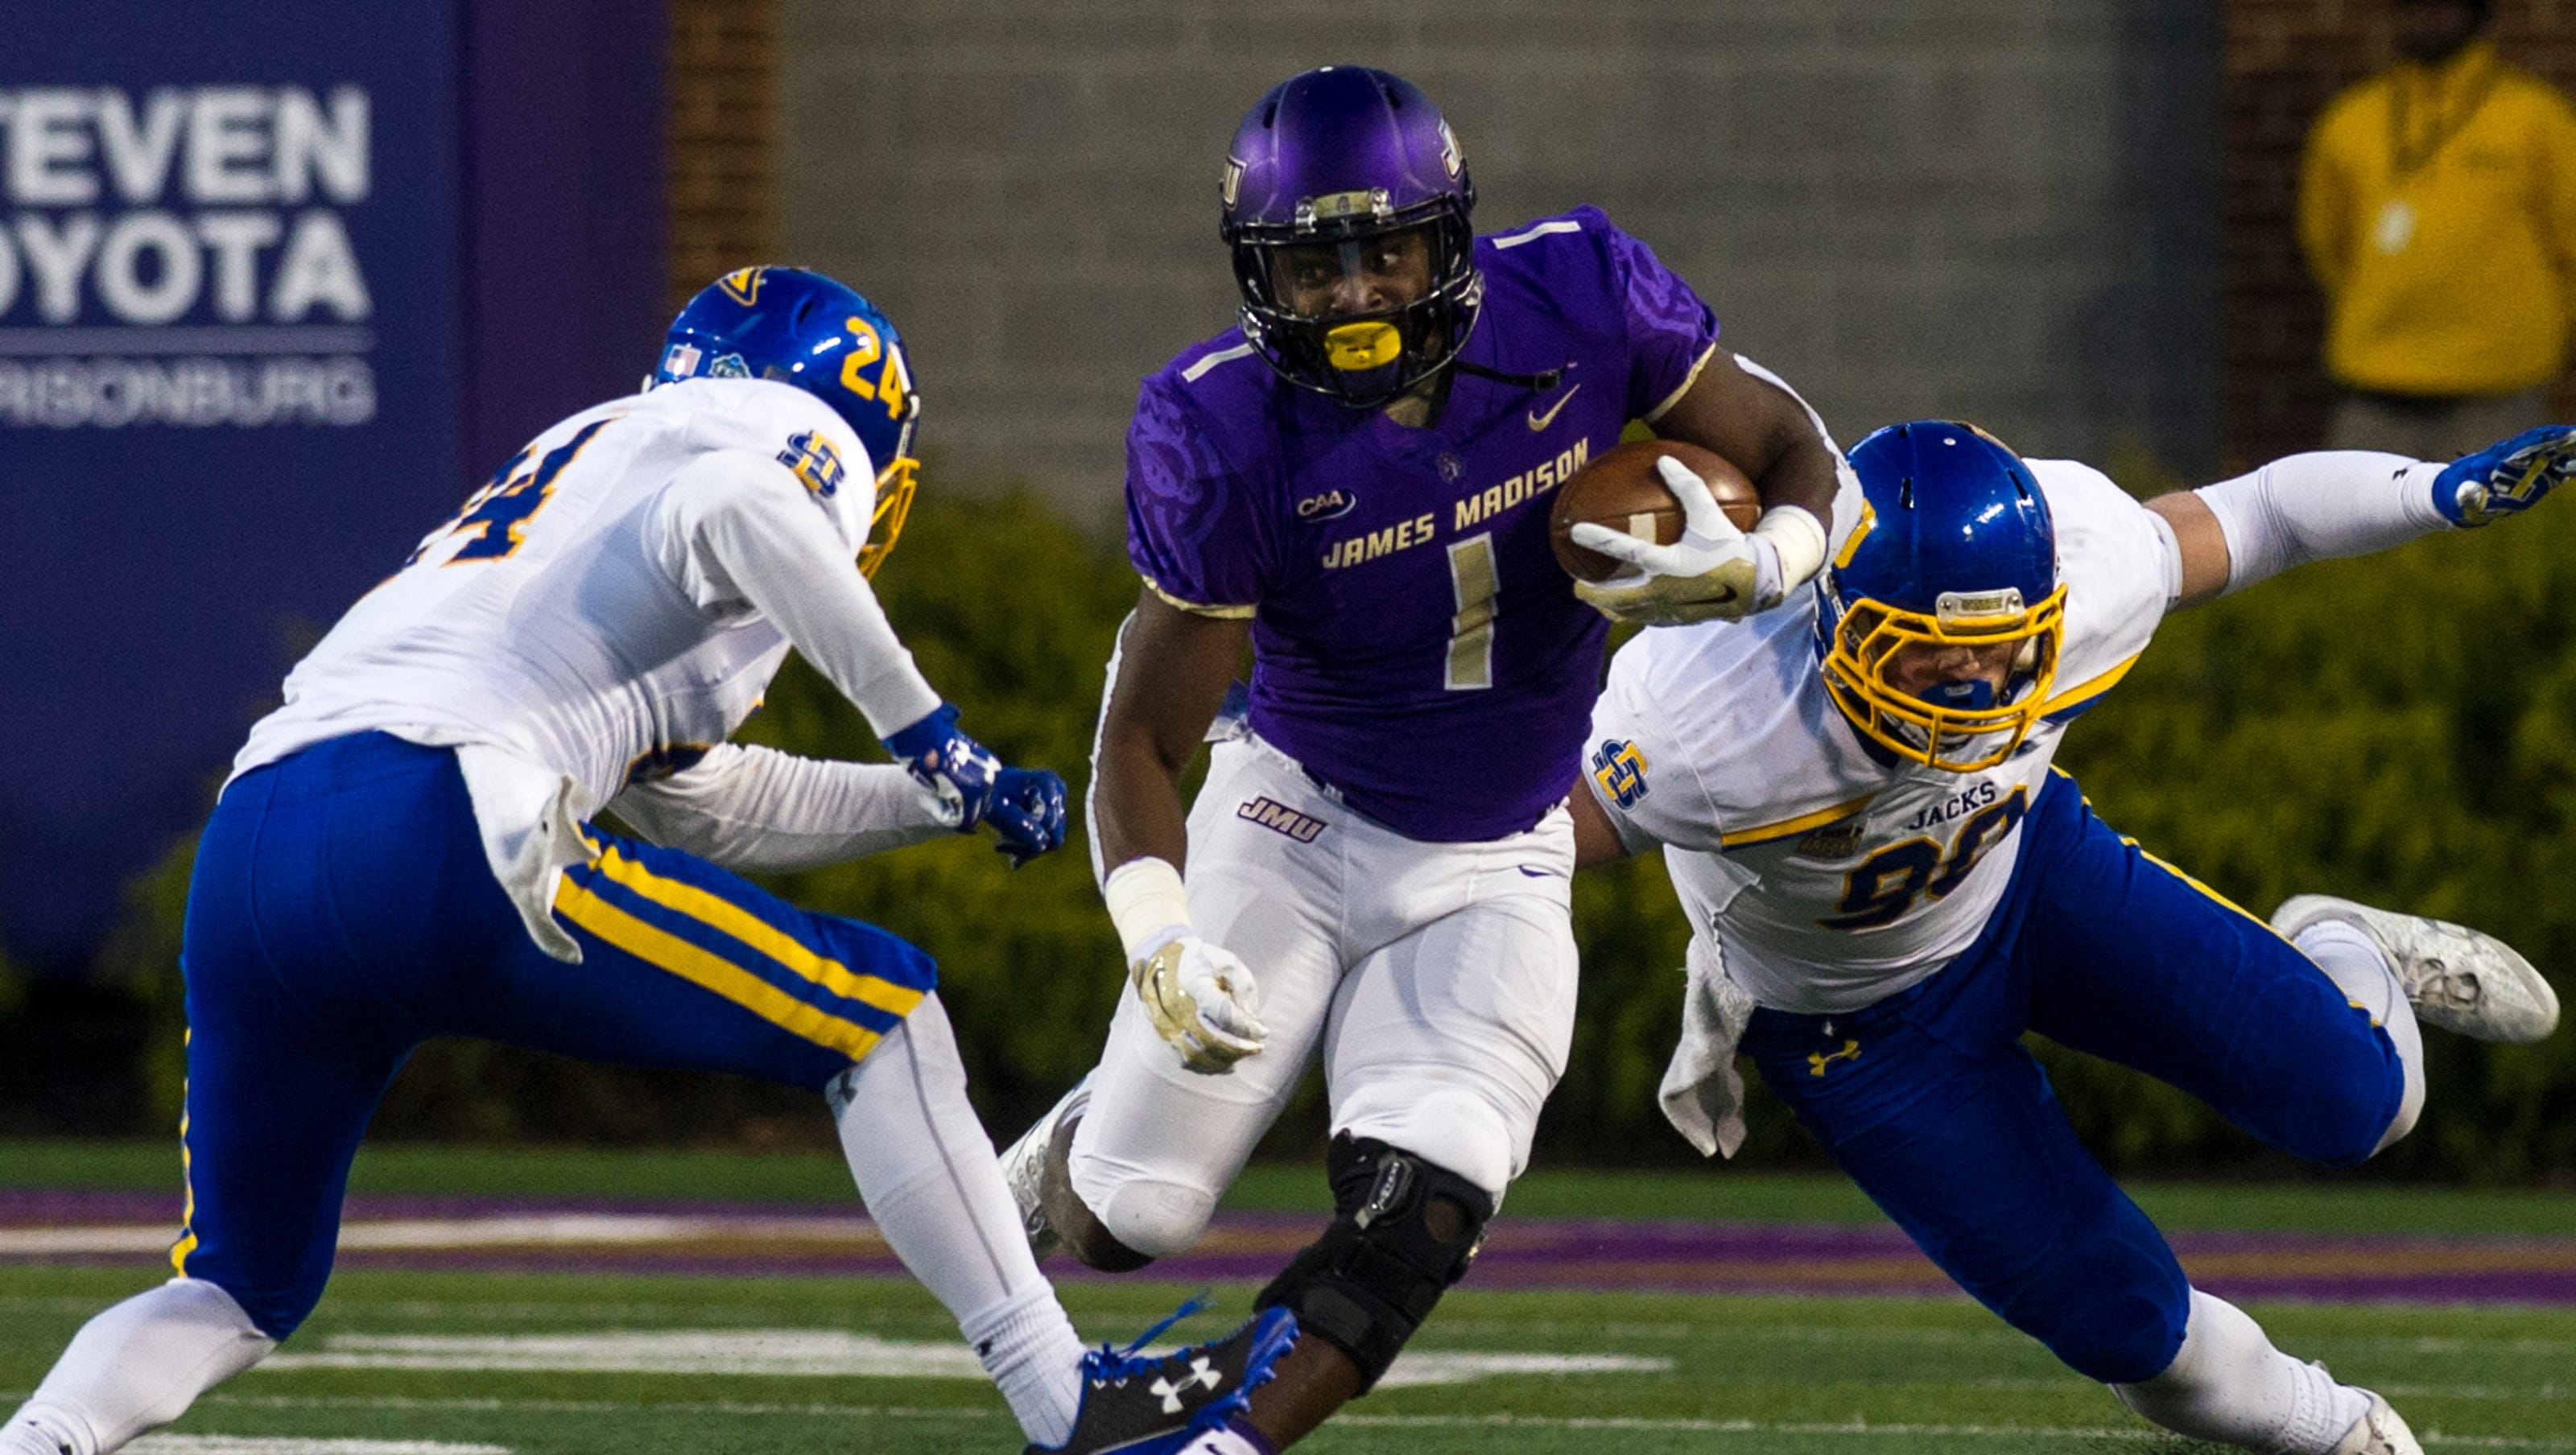 James Madison Defeats South Dakota State 51 16 In Fcs Semifinals